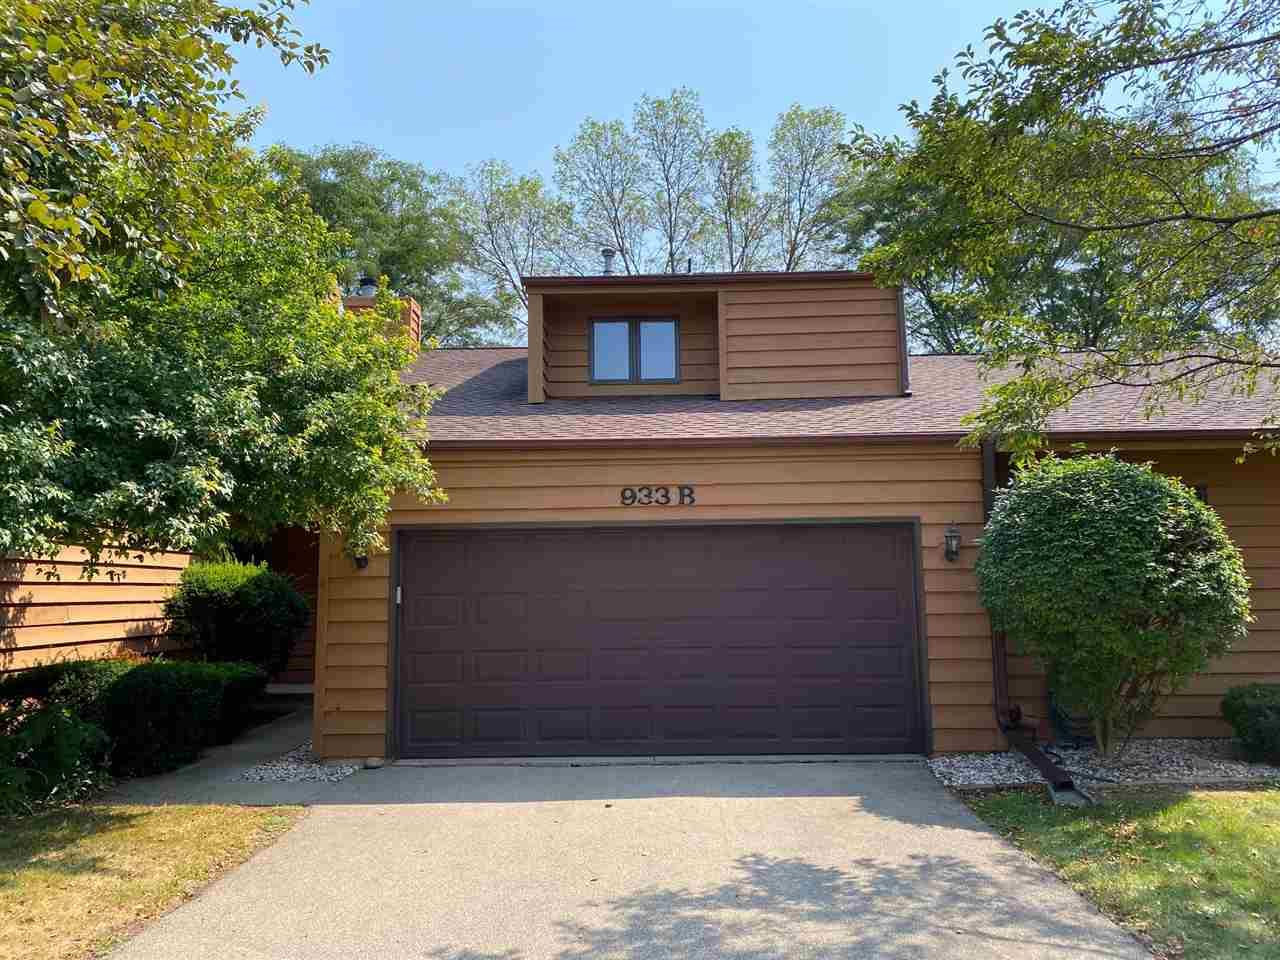 Photo for 933B WINDFIELD Place, APPLETON, WI 54911 (MLS # 50229653)